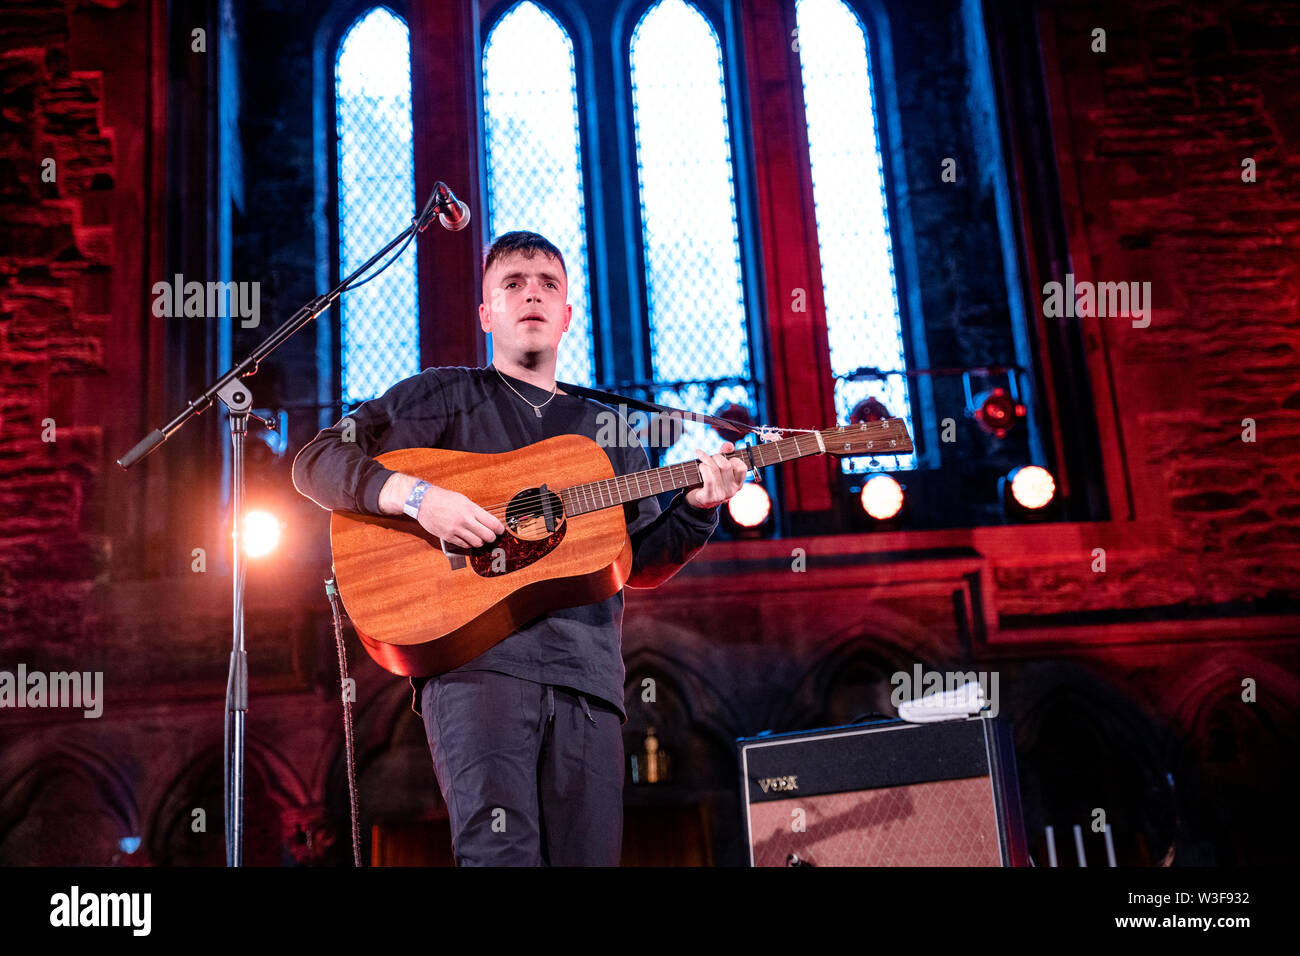 Bergen, Norway - June 15th, 2019. The English singer and songwriter Benjamin Francis Leftwich performs a live concert during the Norwegian music festival Bergenfest 2019 in Bergen. (Photo credit: Gonzales Photo - Jarle H. Moe). - Stock Image